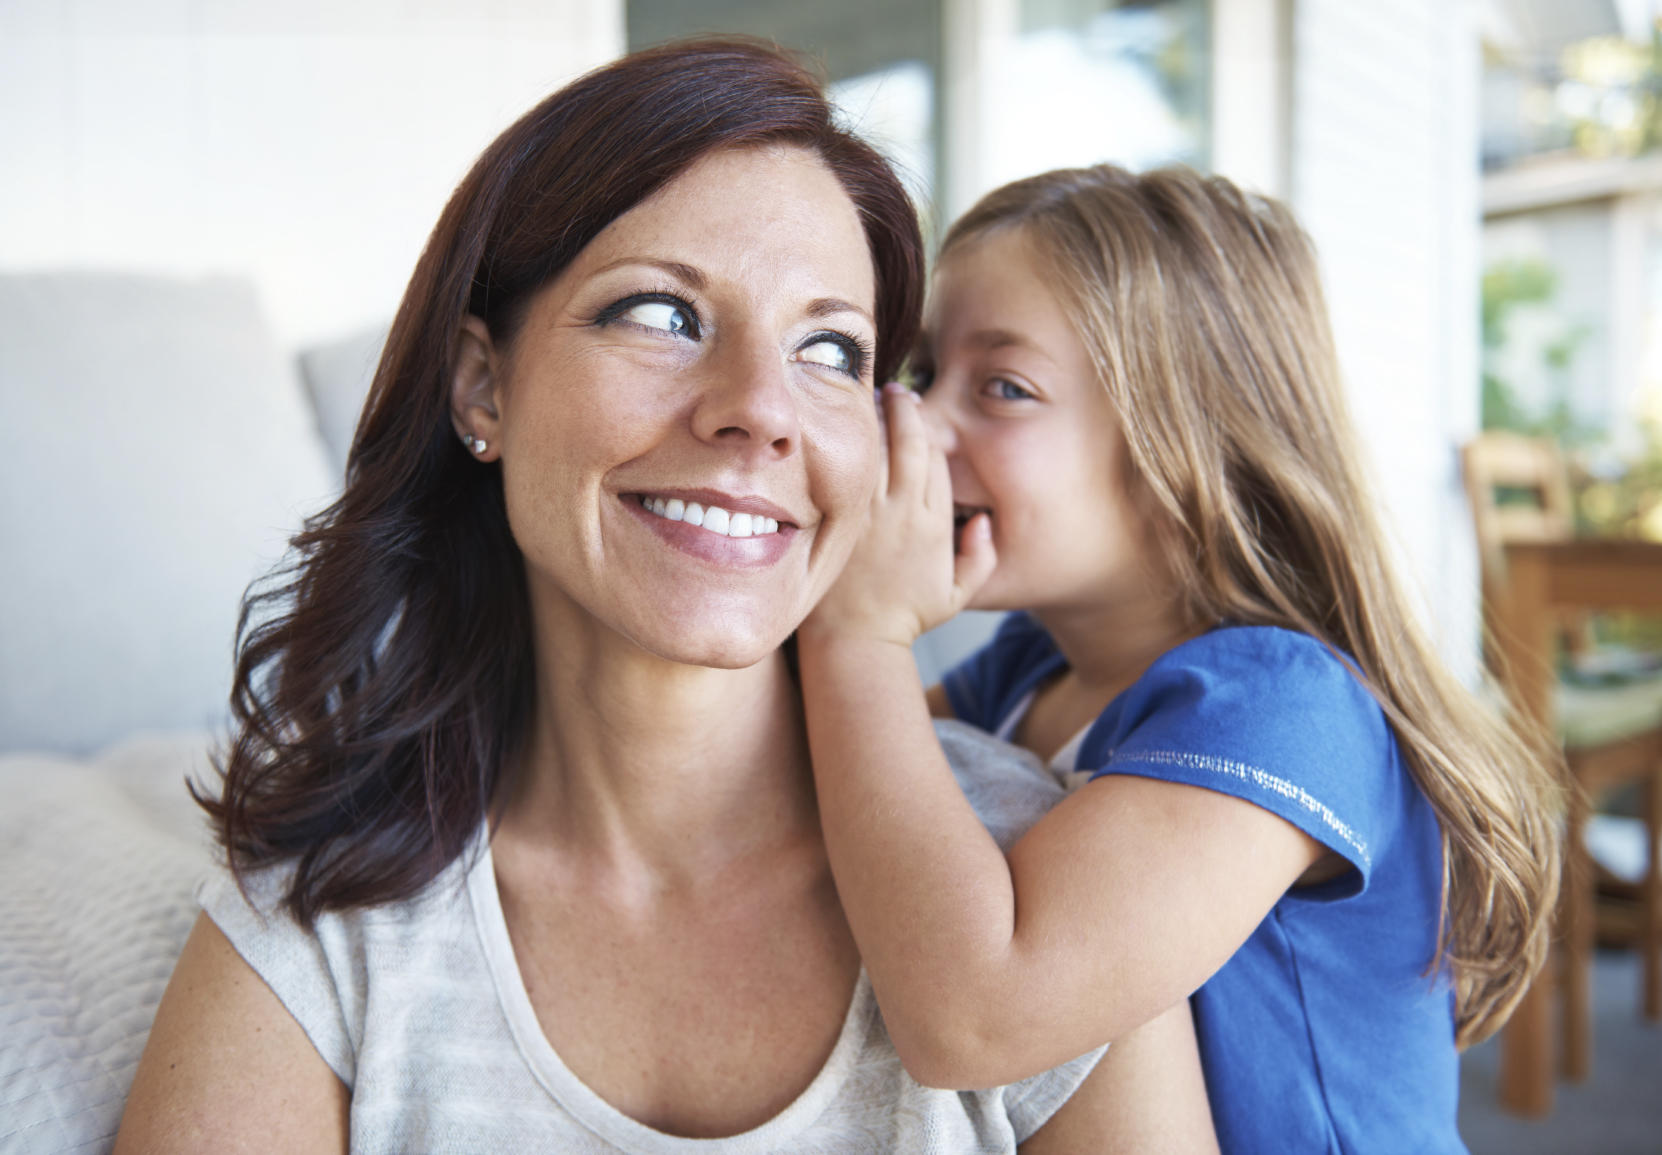 Shot of a cute little girl whispering into her smiling mother's ear